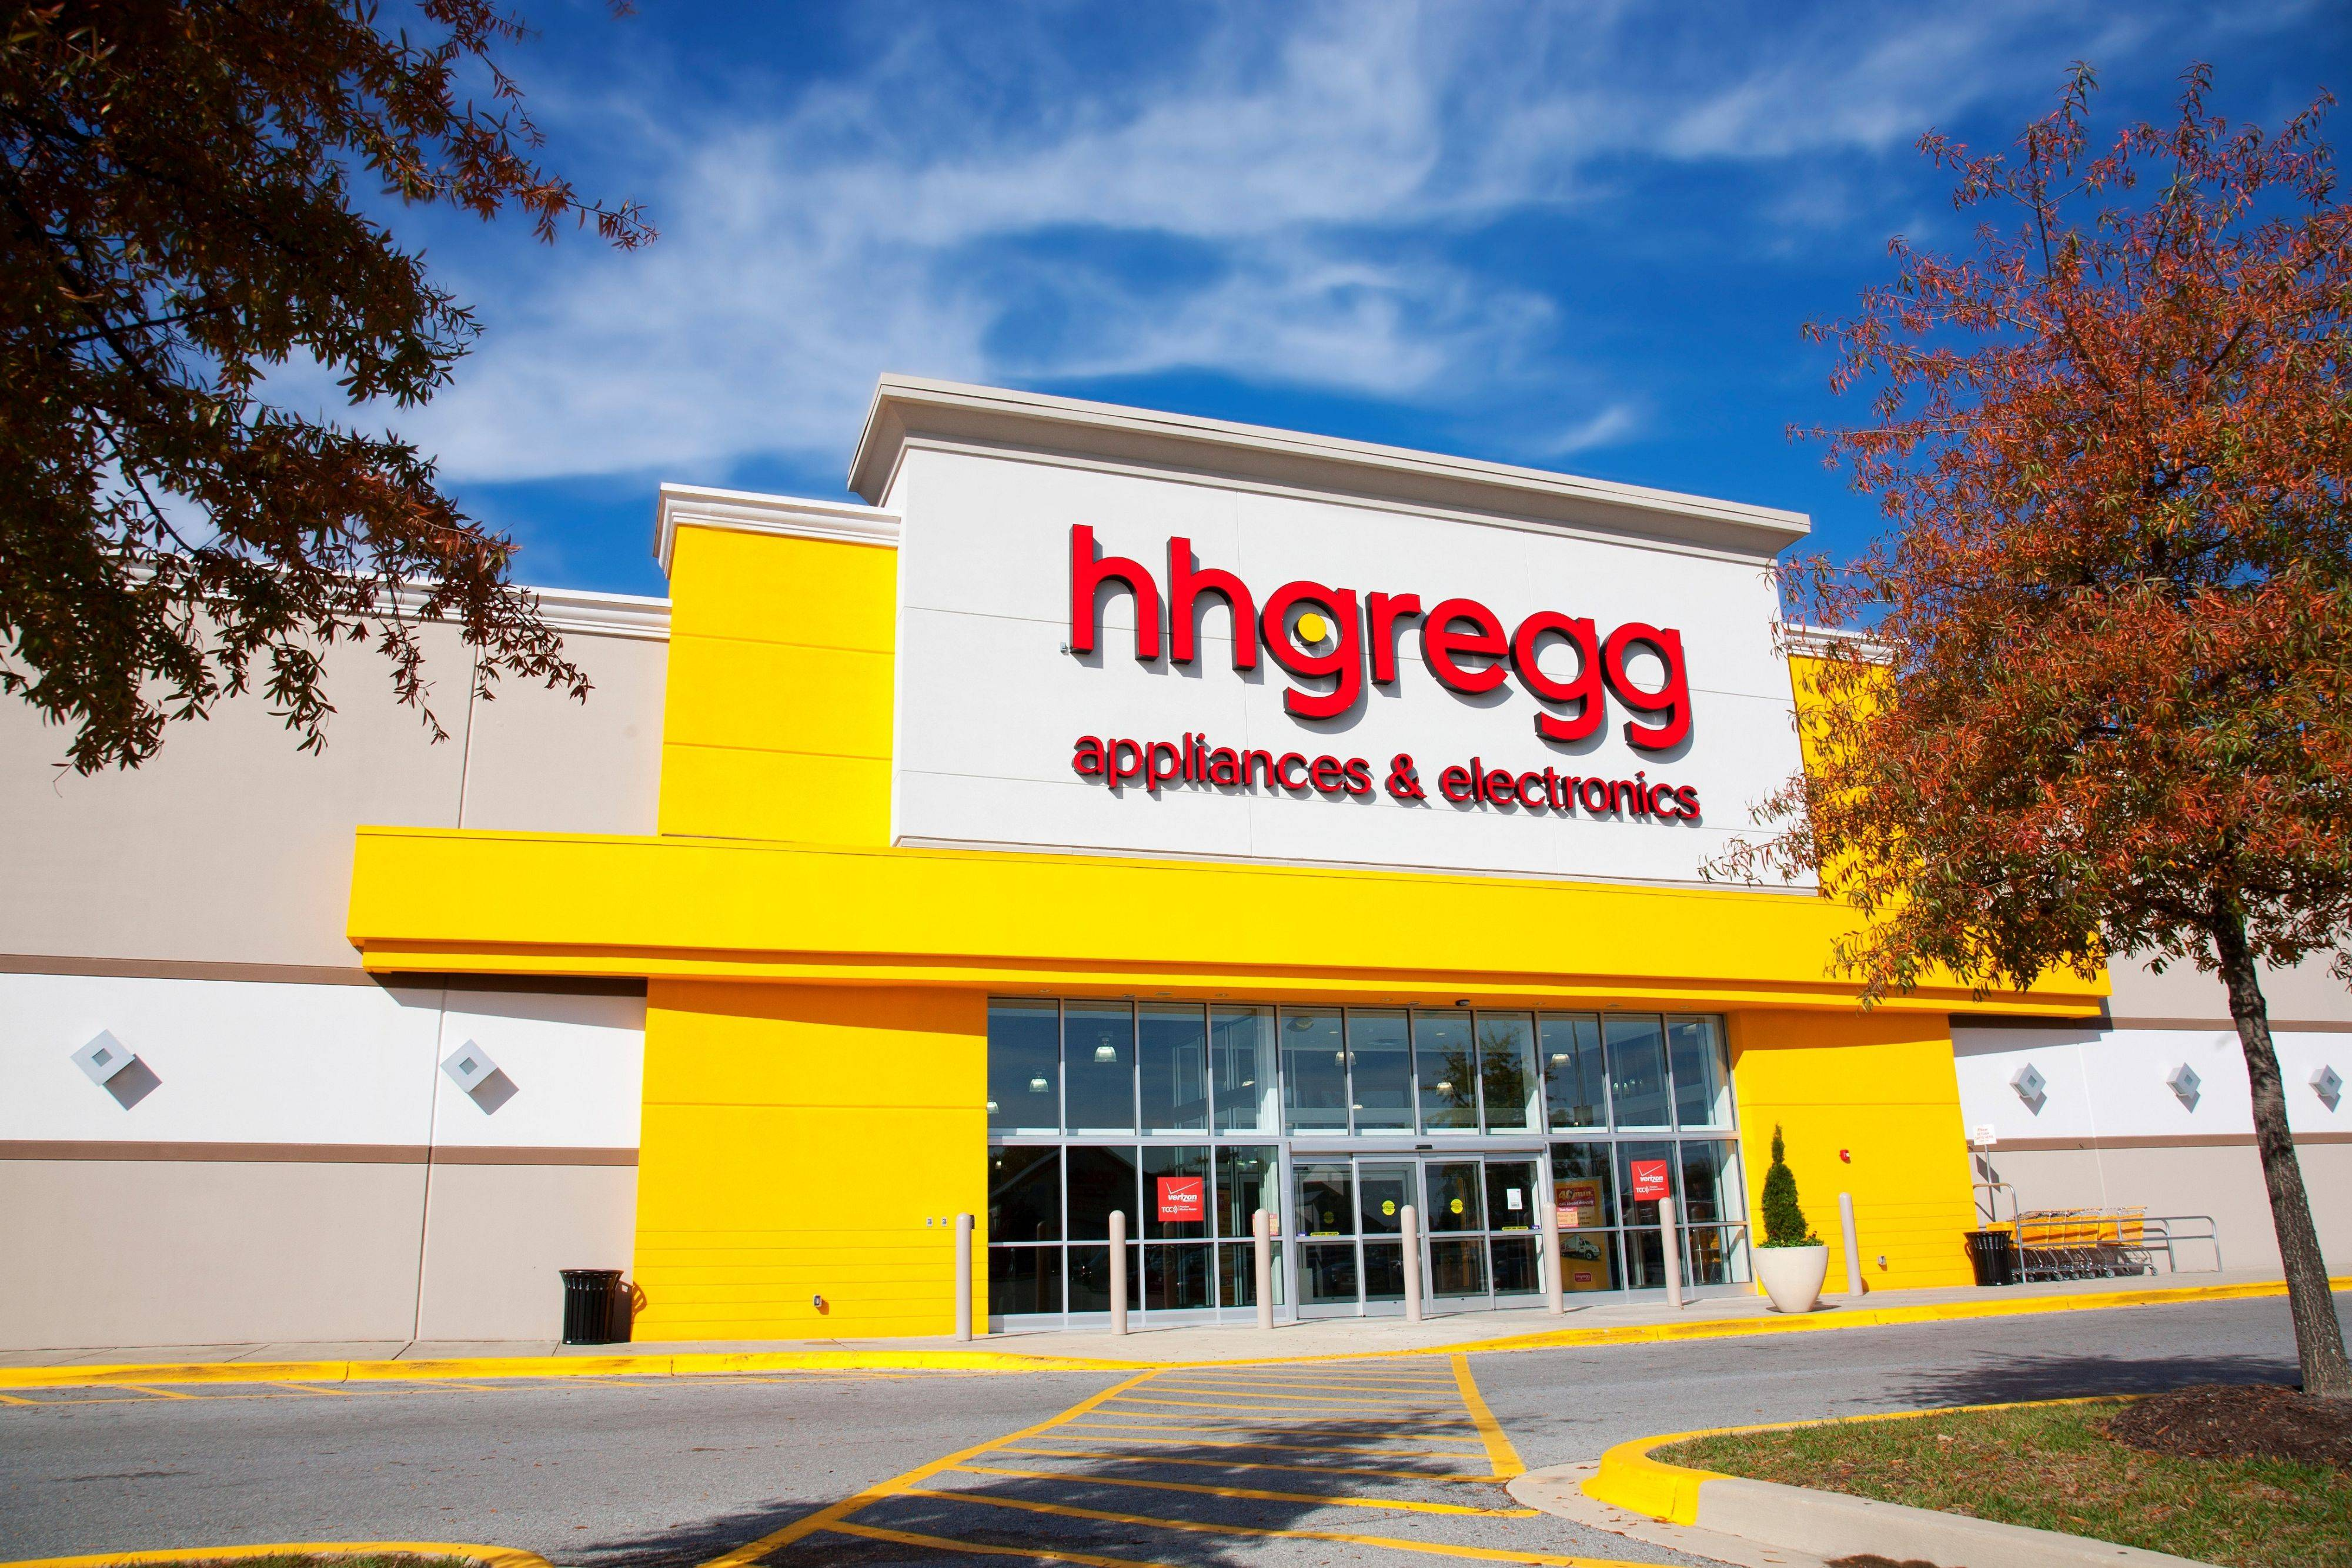 Indianapolis-based HHGregg, an electronics retailer, will be opening a new location in Arlington Heights this fall.